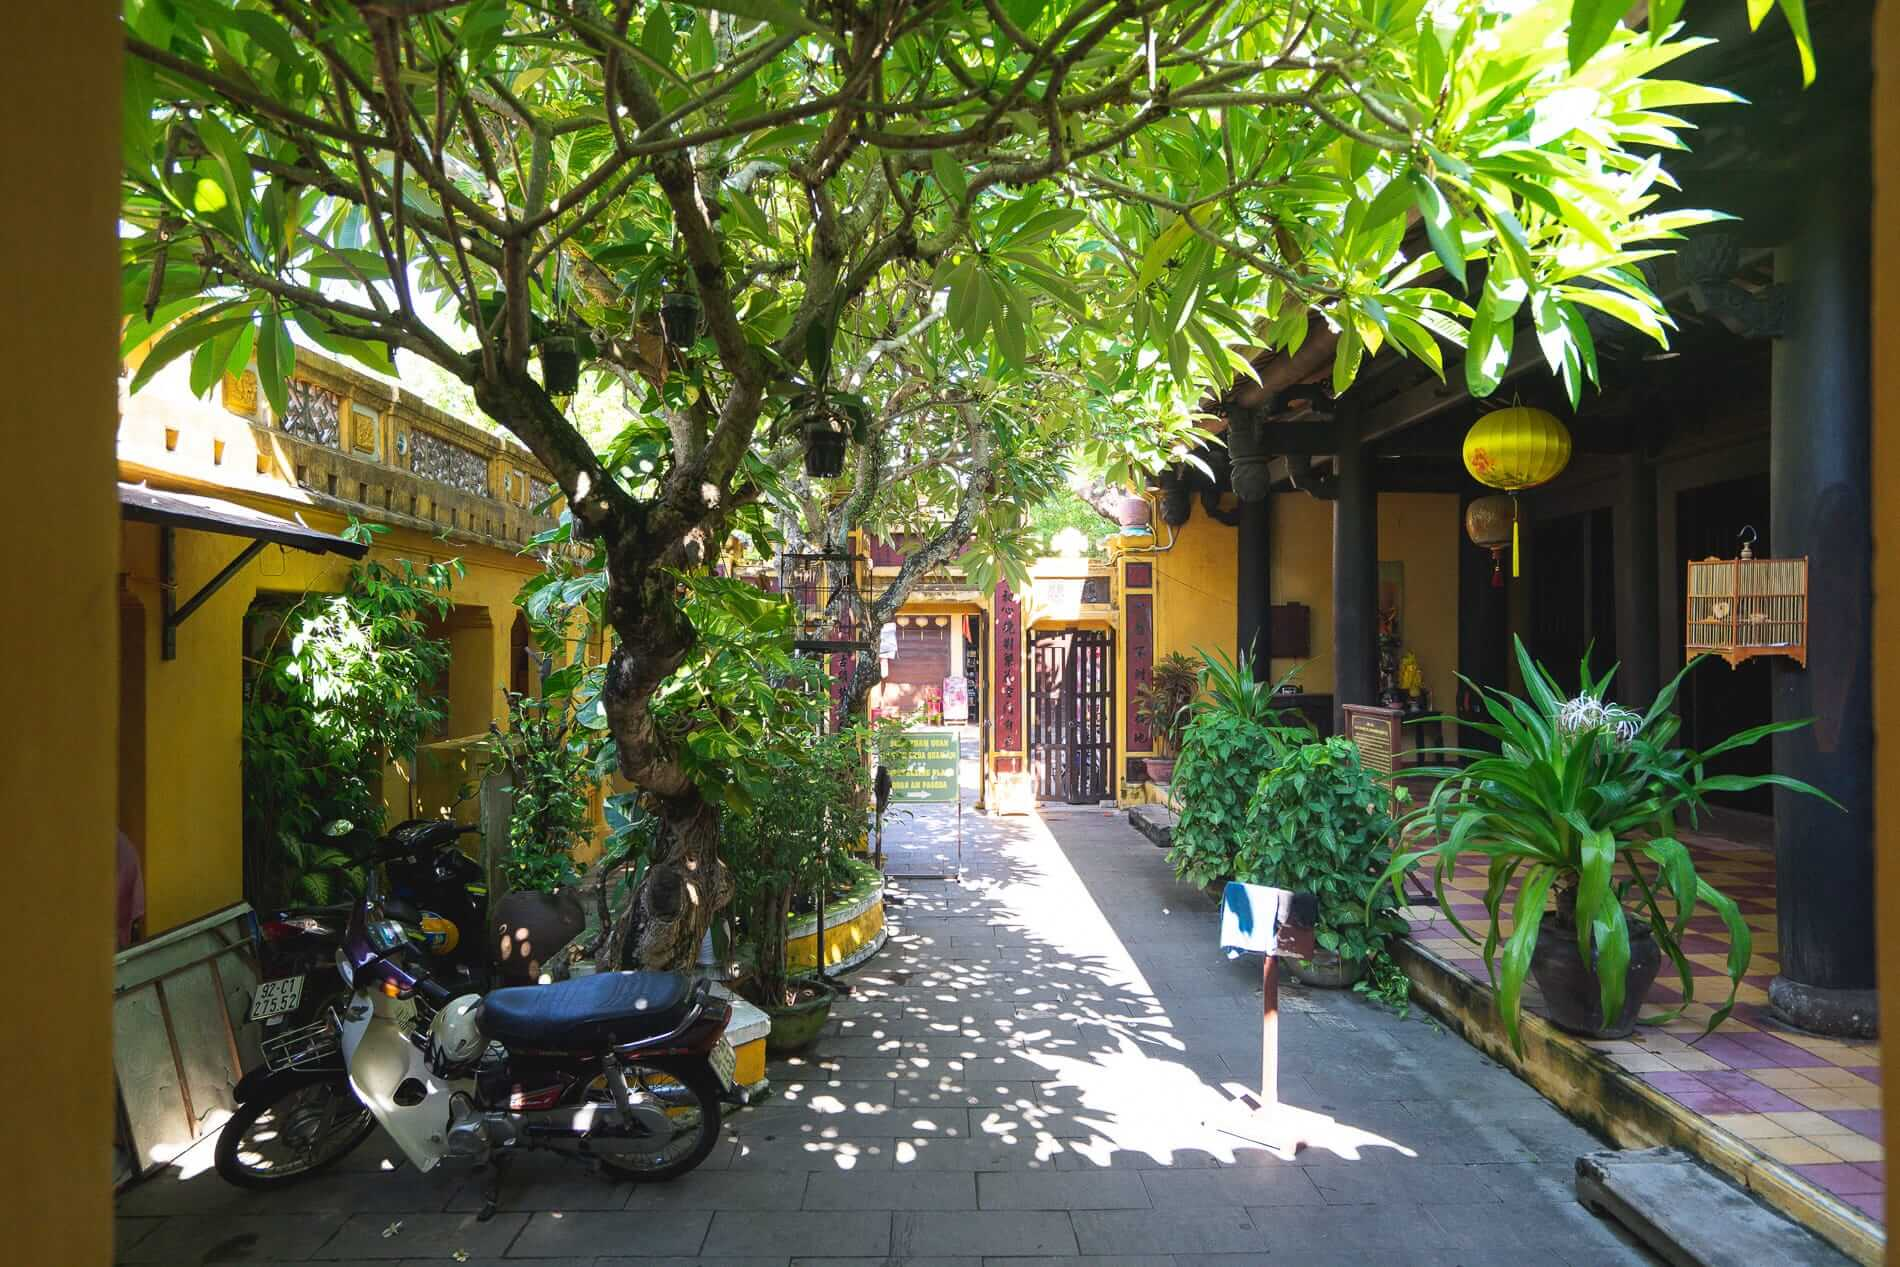 Courtyard of the Quan Am Pagoda - Hoi An Temples and Pagodas